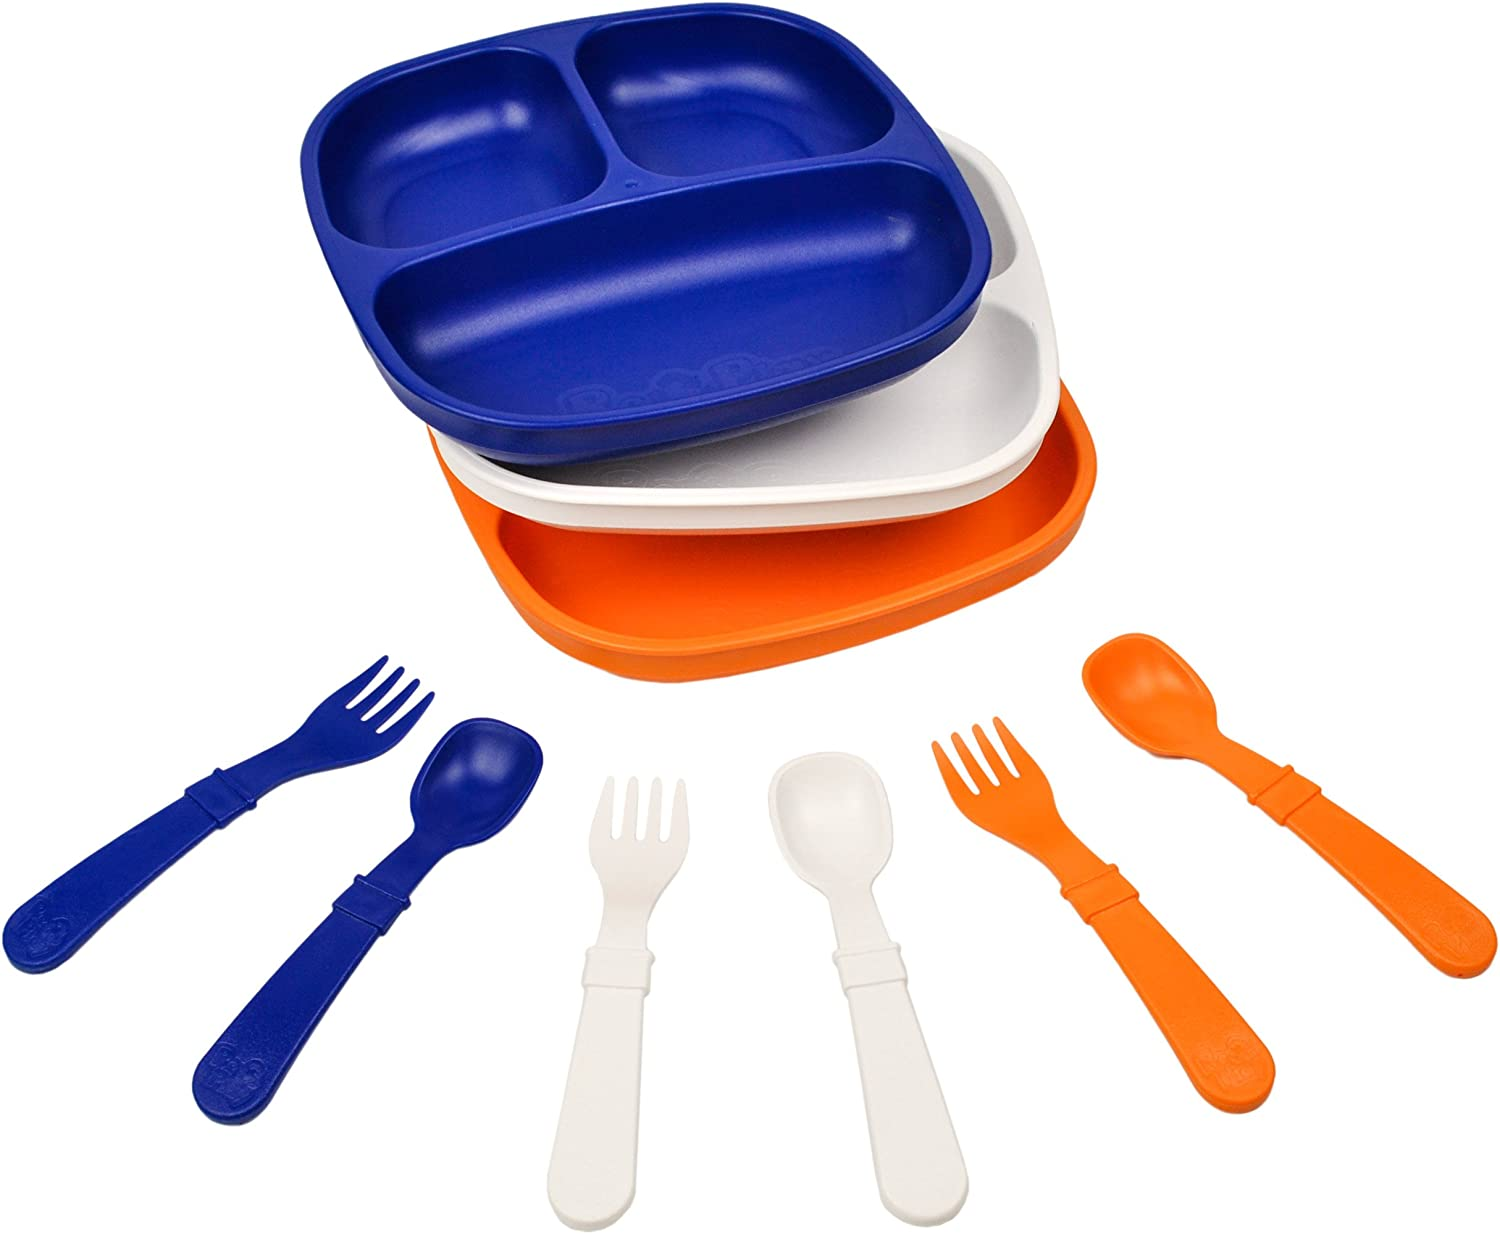 Re-Play Made in The USA Dinnerware Set 3pk Divided Plates with Matching Utensils Set Sport